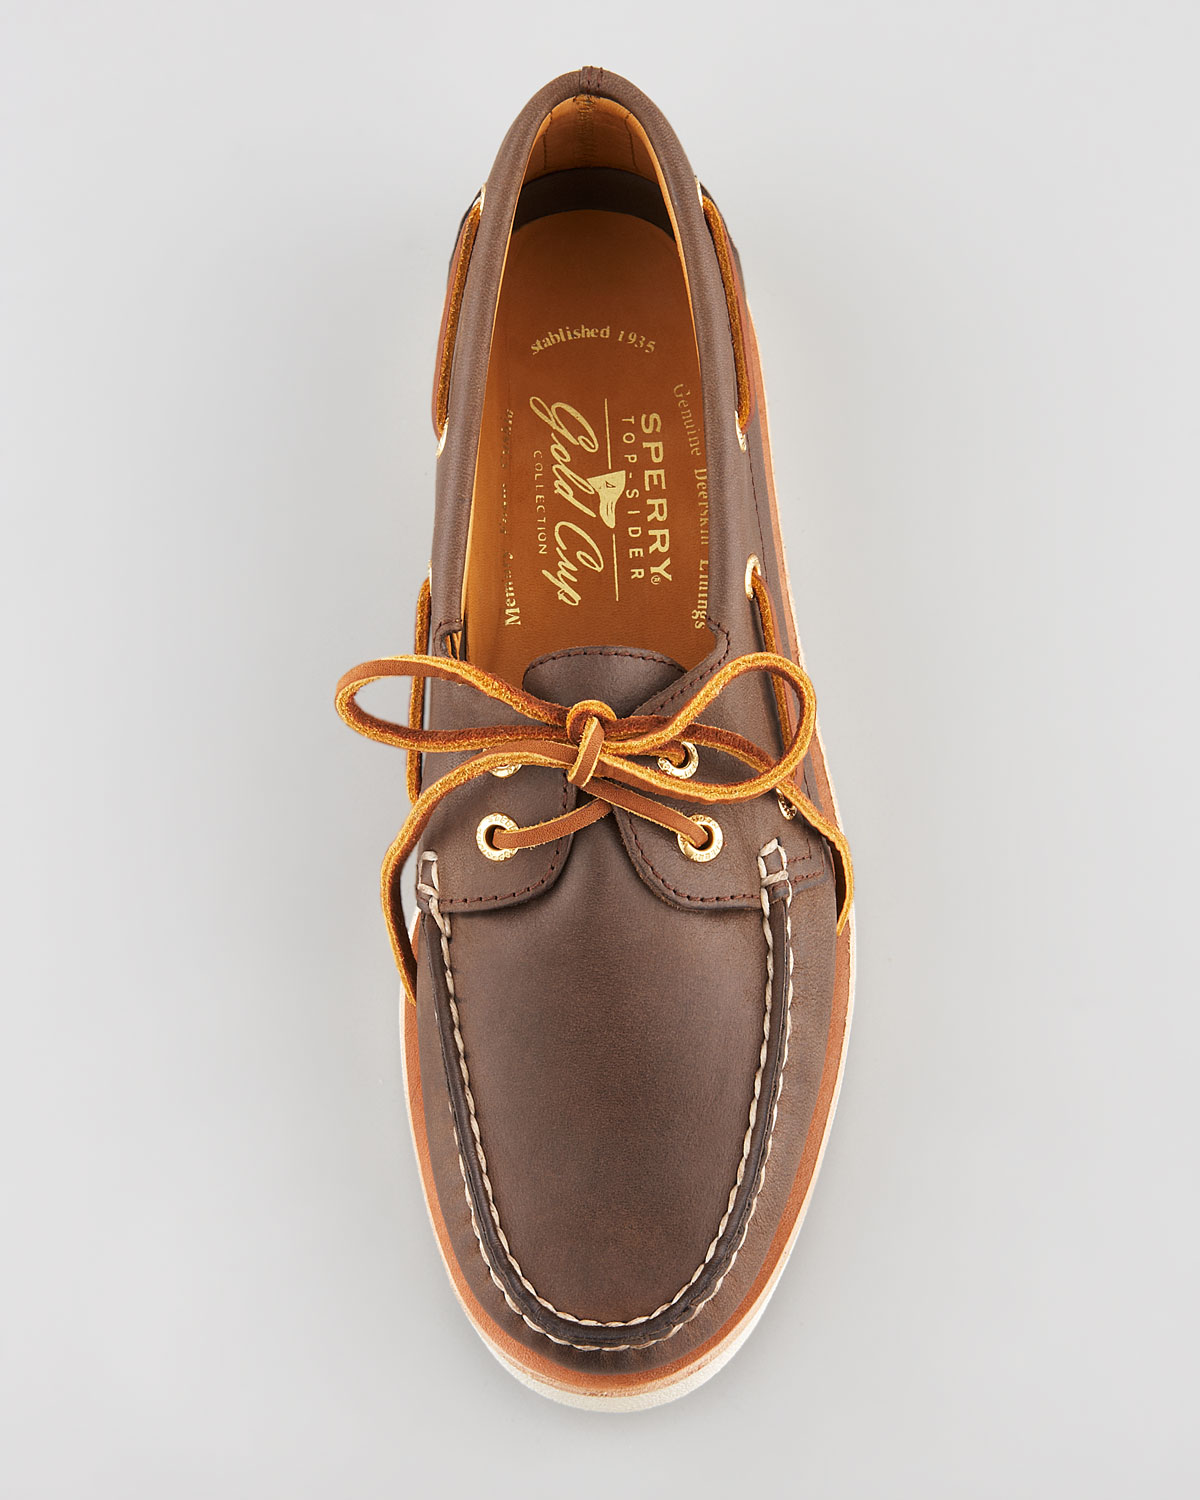 Sperry Gold Cup Bellingham Wingtip Shoes (For Men) |Sperry Gold